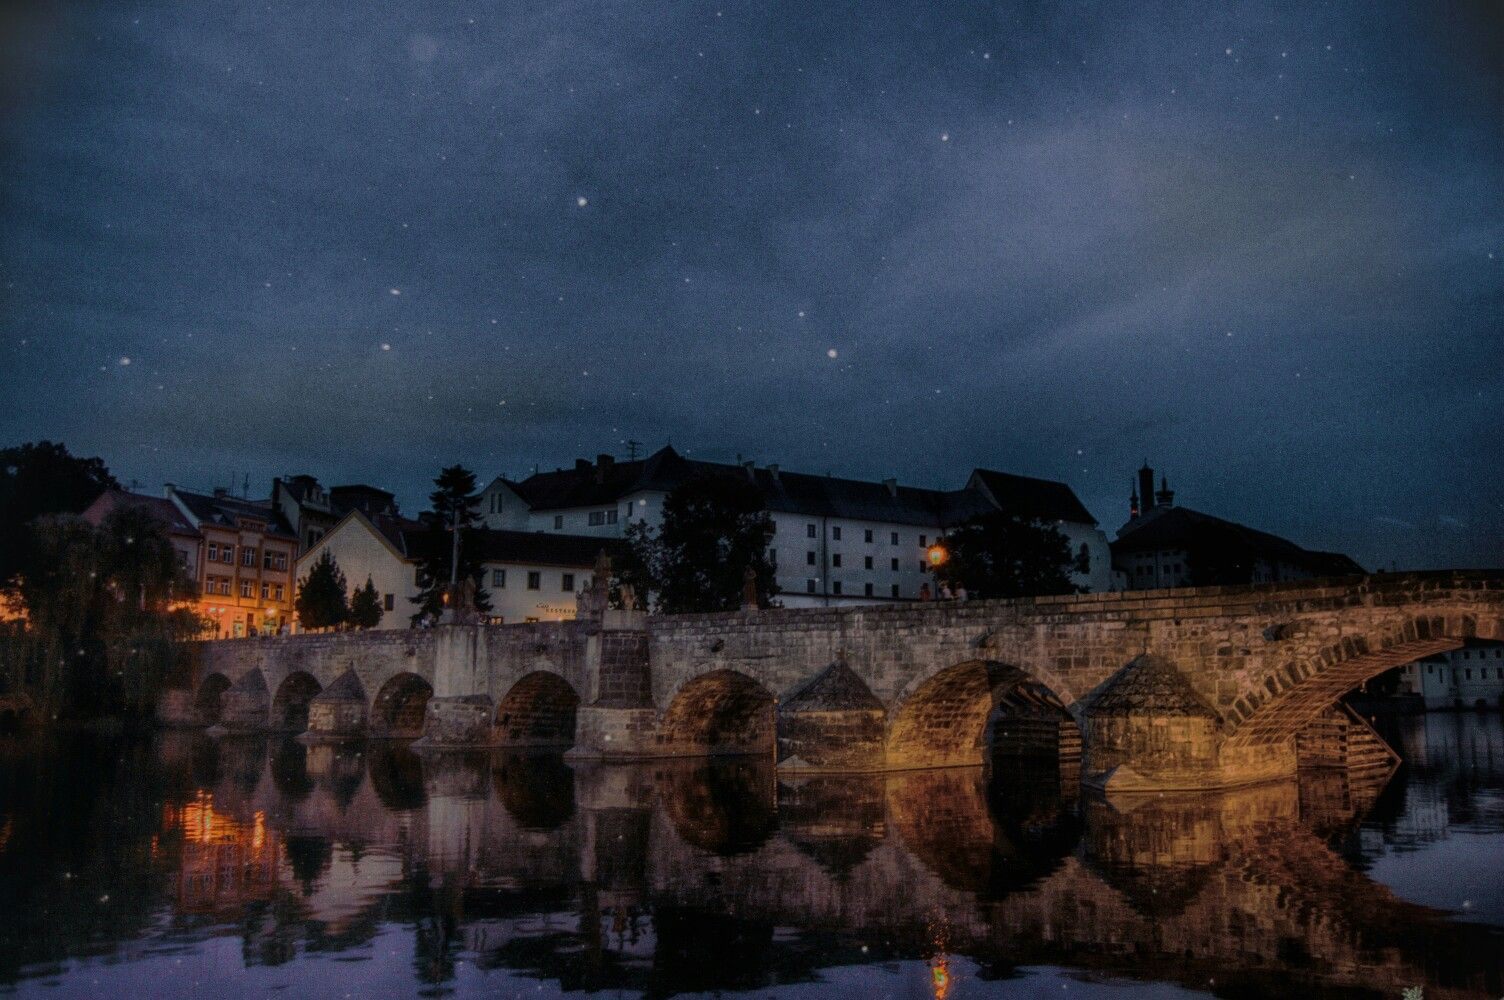 #hdr #bridge #town #sky #stars #river #water #night #lights #building #architecture #bricks #castle #old #photoshop #photoshopcs5 #nikcollection #vsco #vscocam #nikon #nikond3200